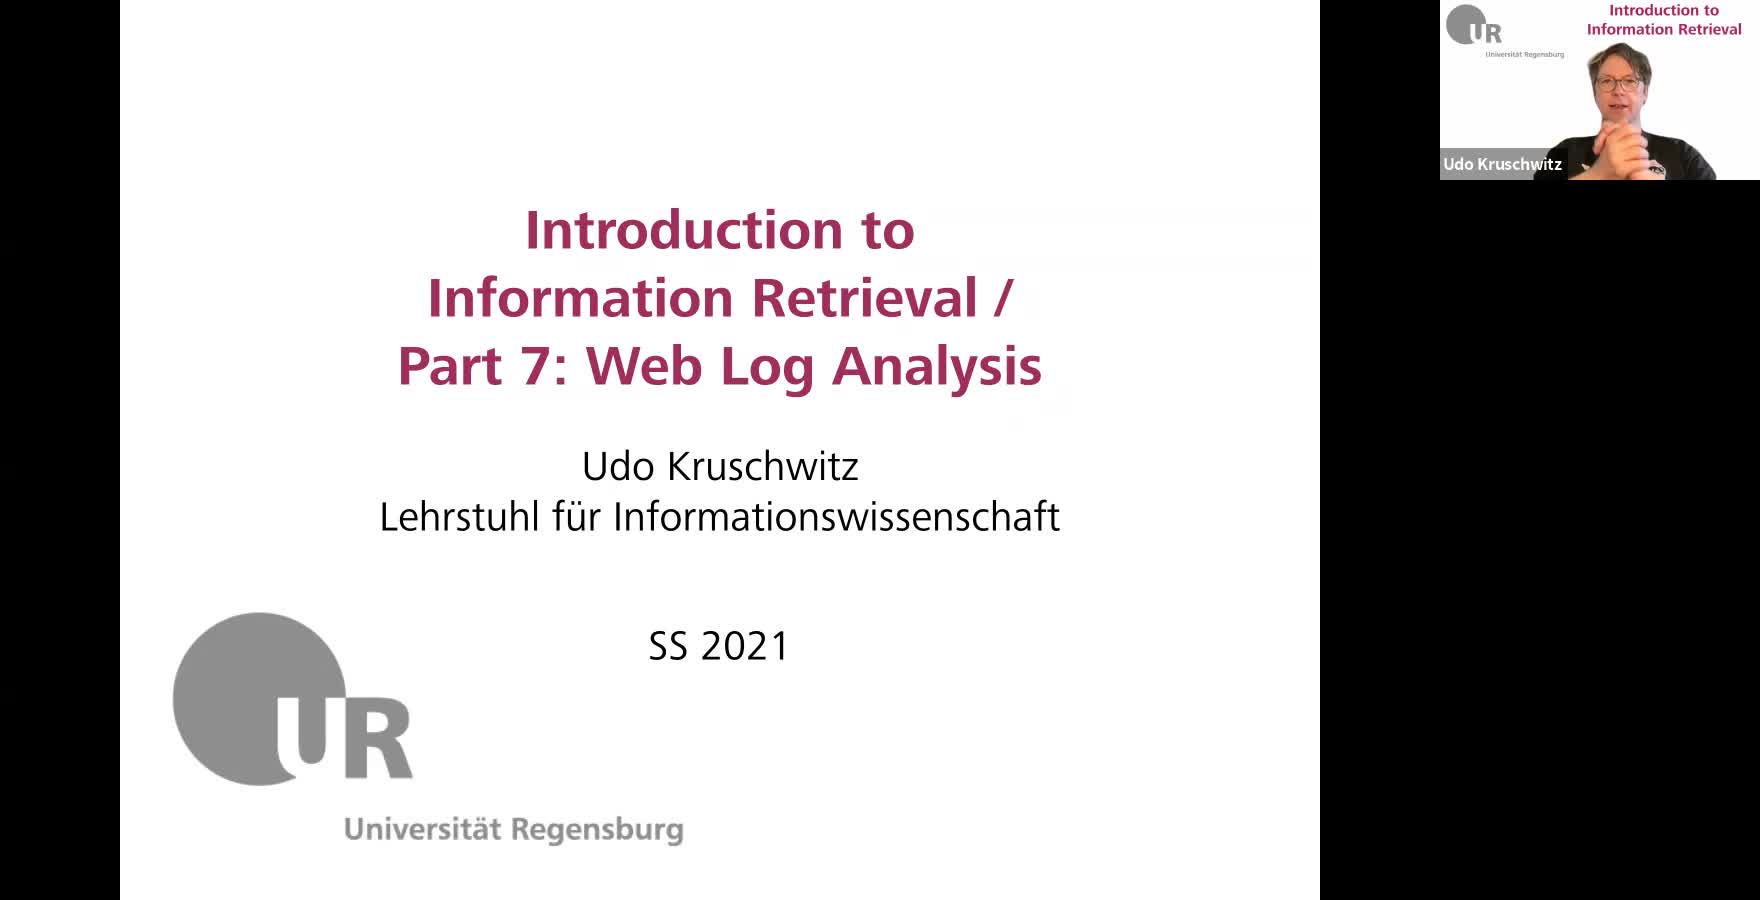 Introduction to Information Retrieval - Lecture 7 (Web log analysis)